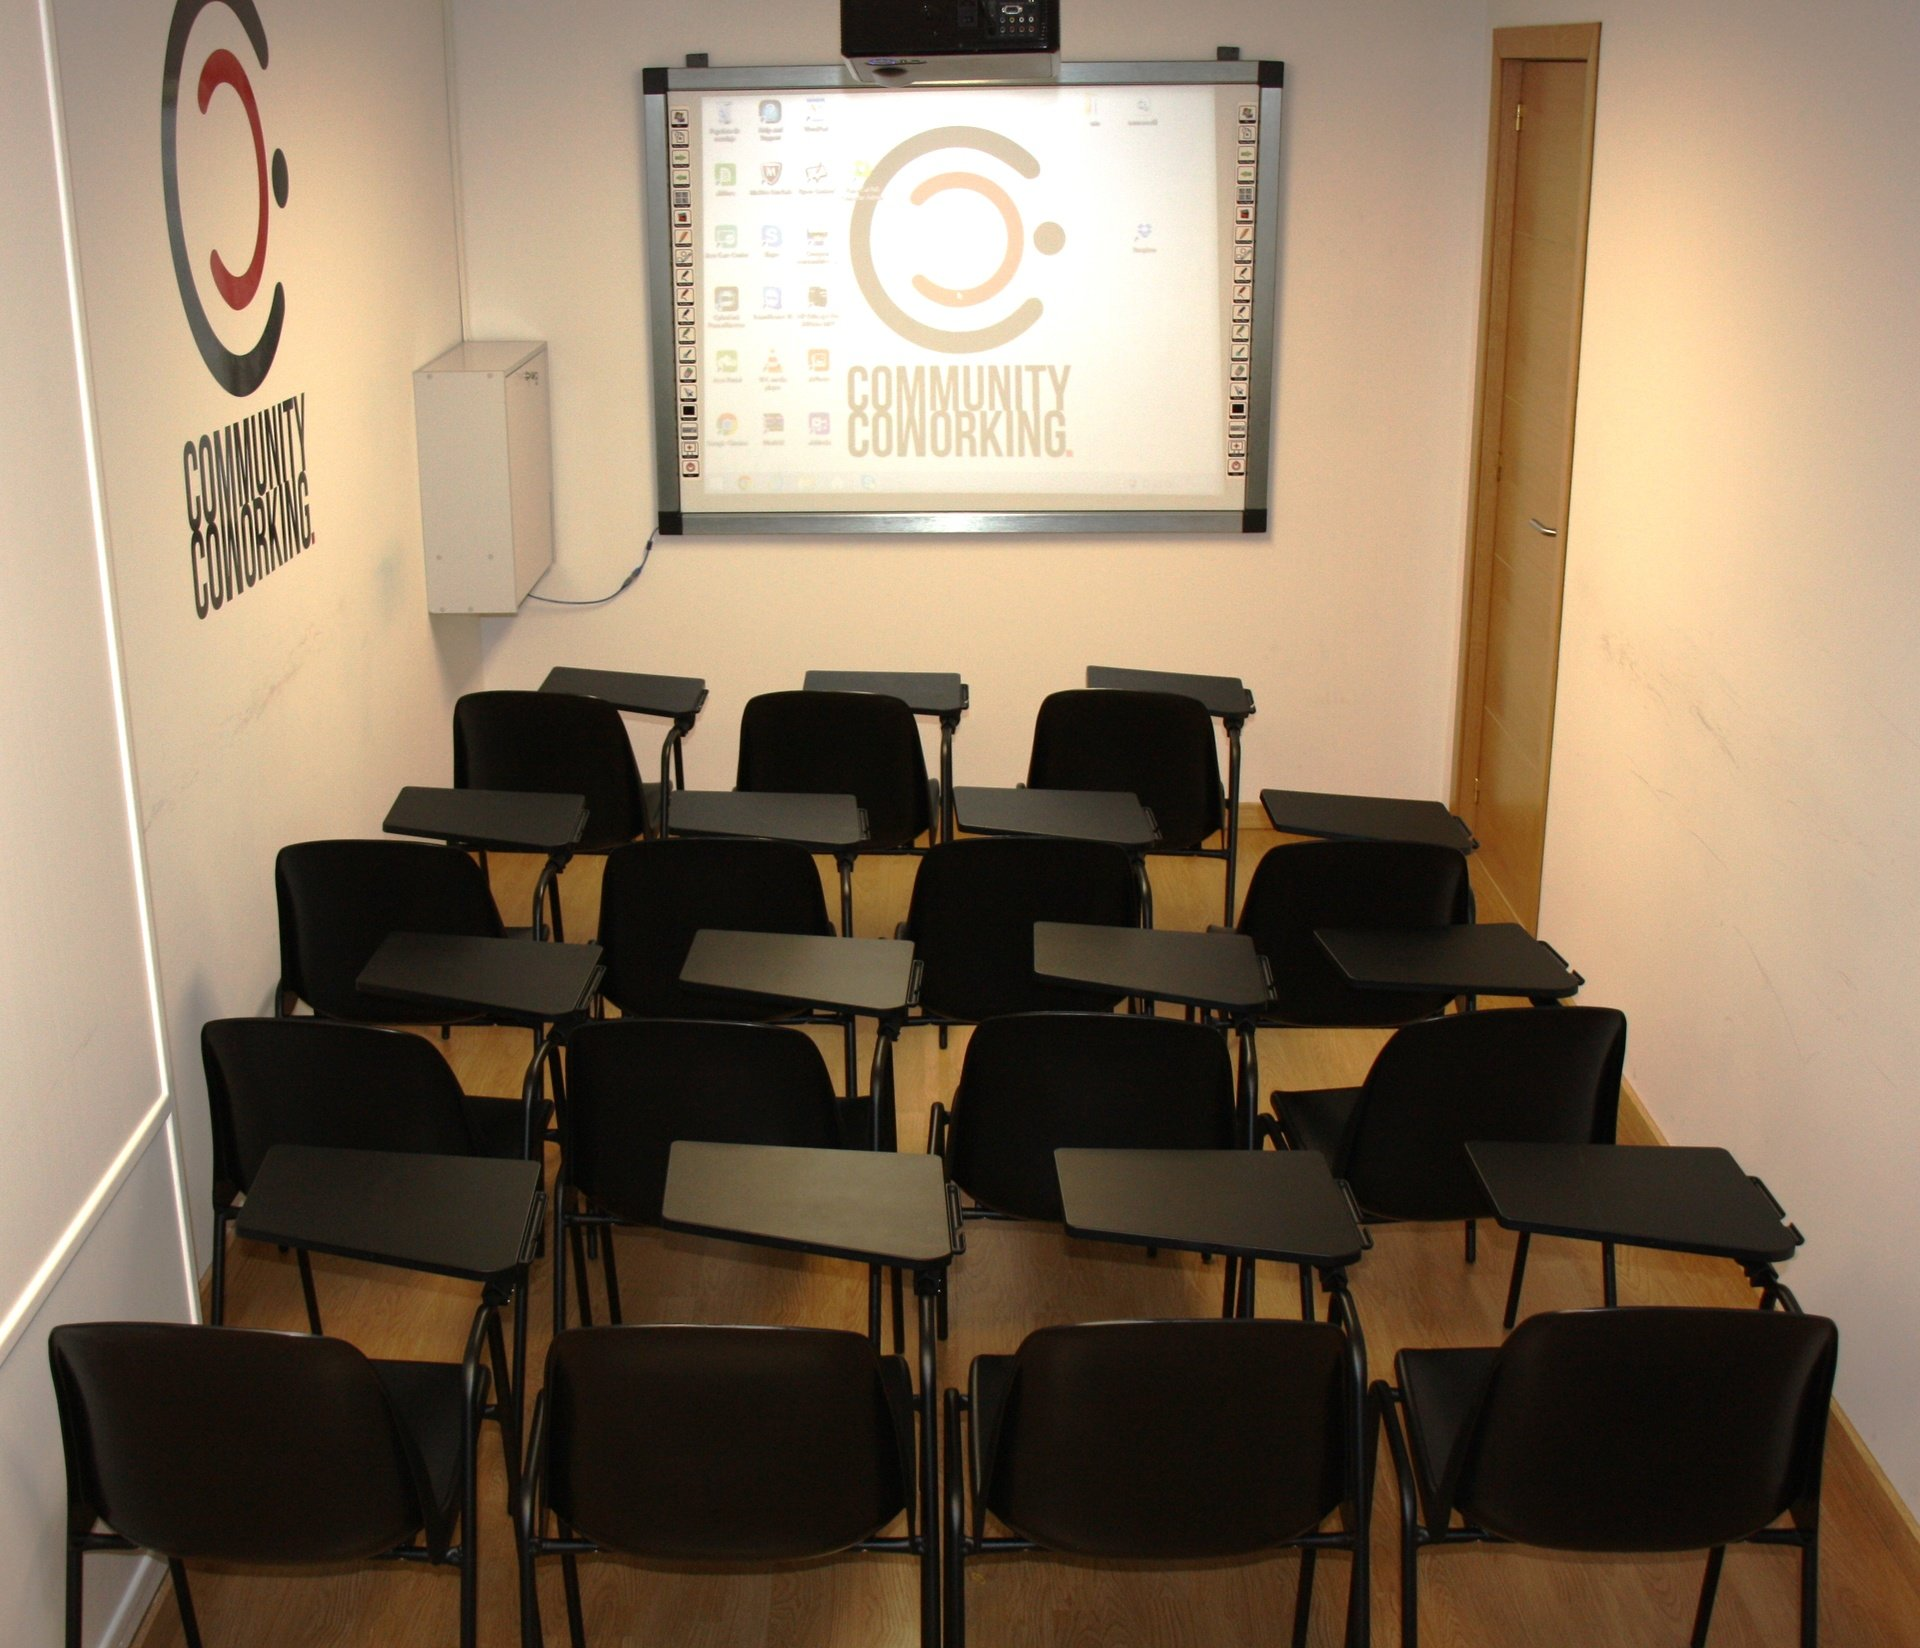 Madrid Train station meeting rooms Coworking space Community Coworking Madrid  image 0